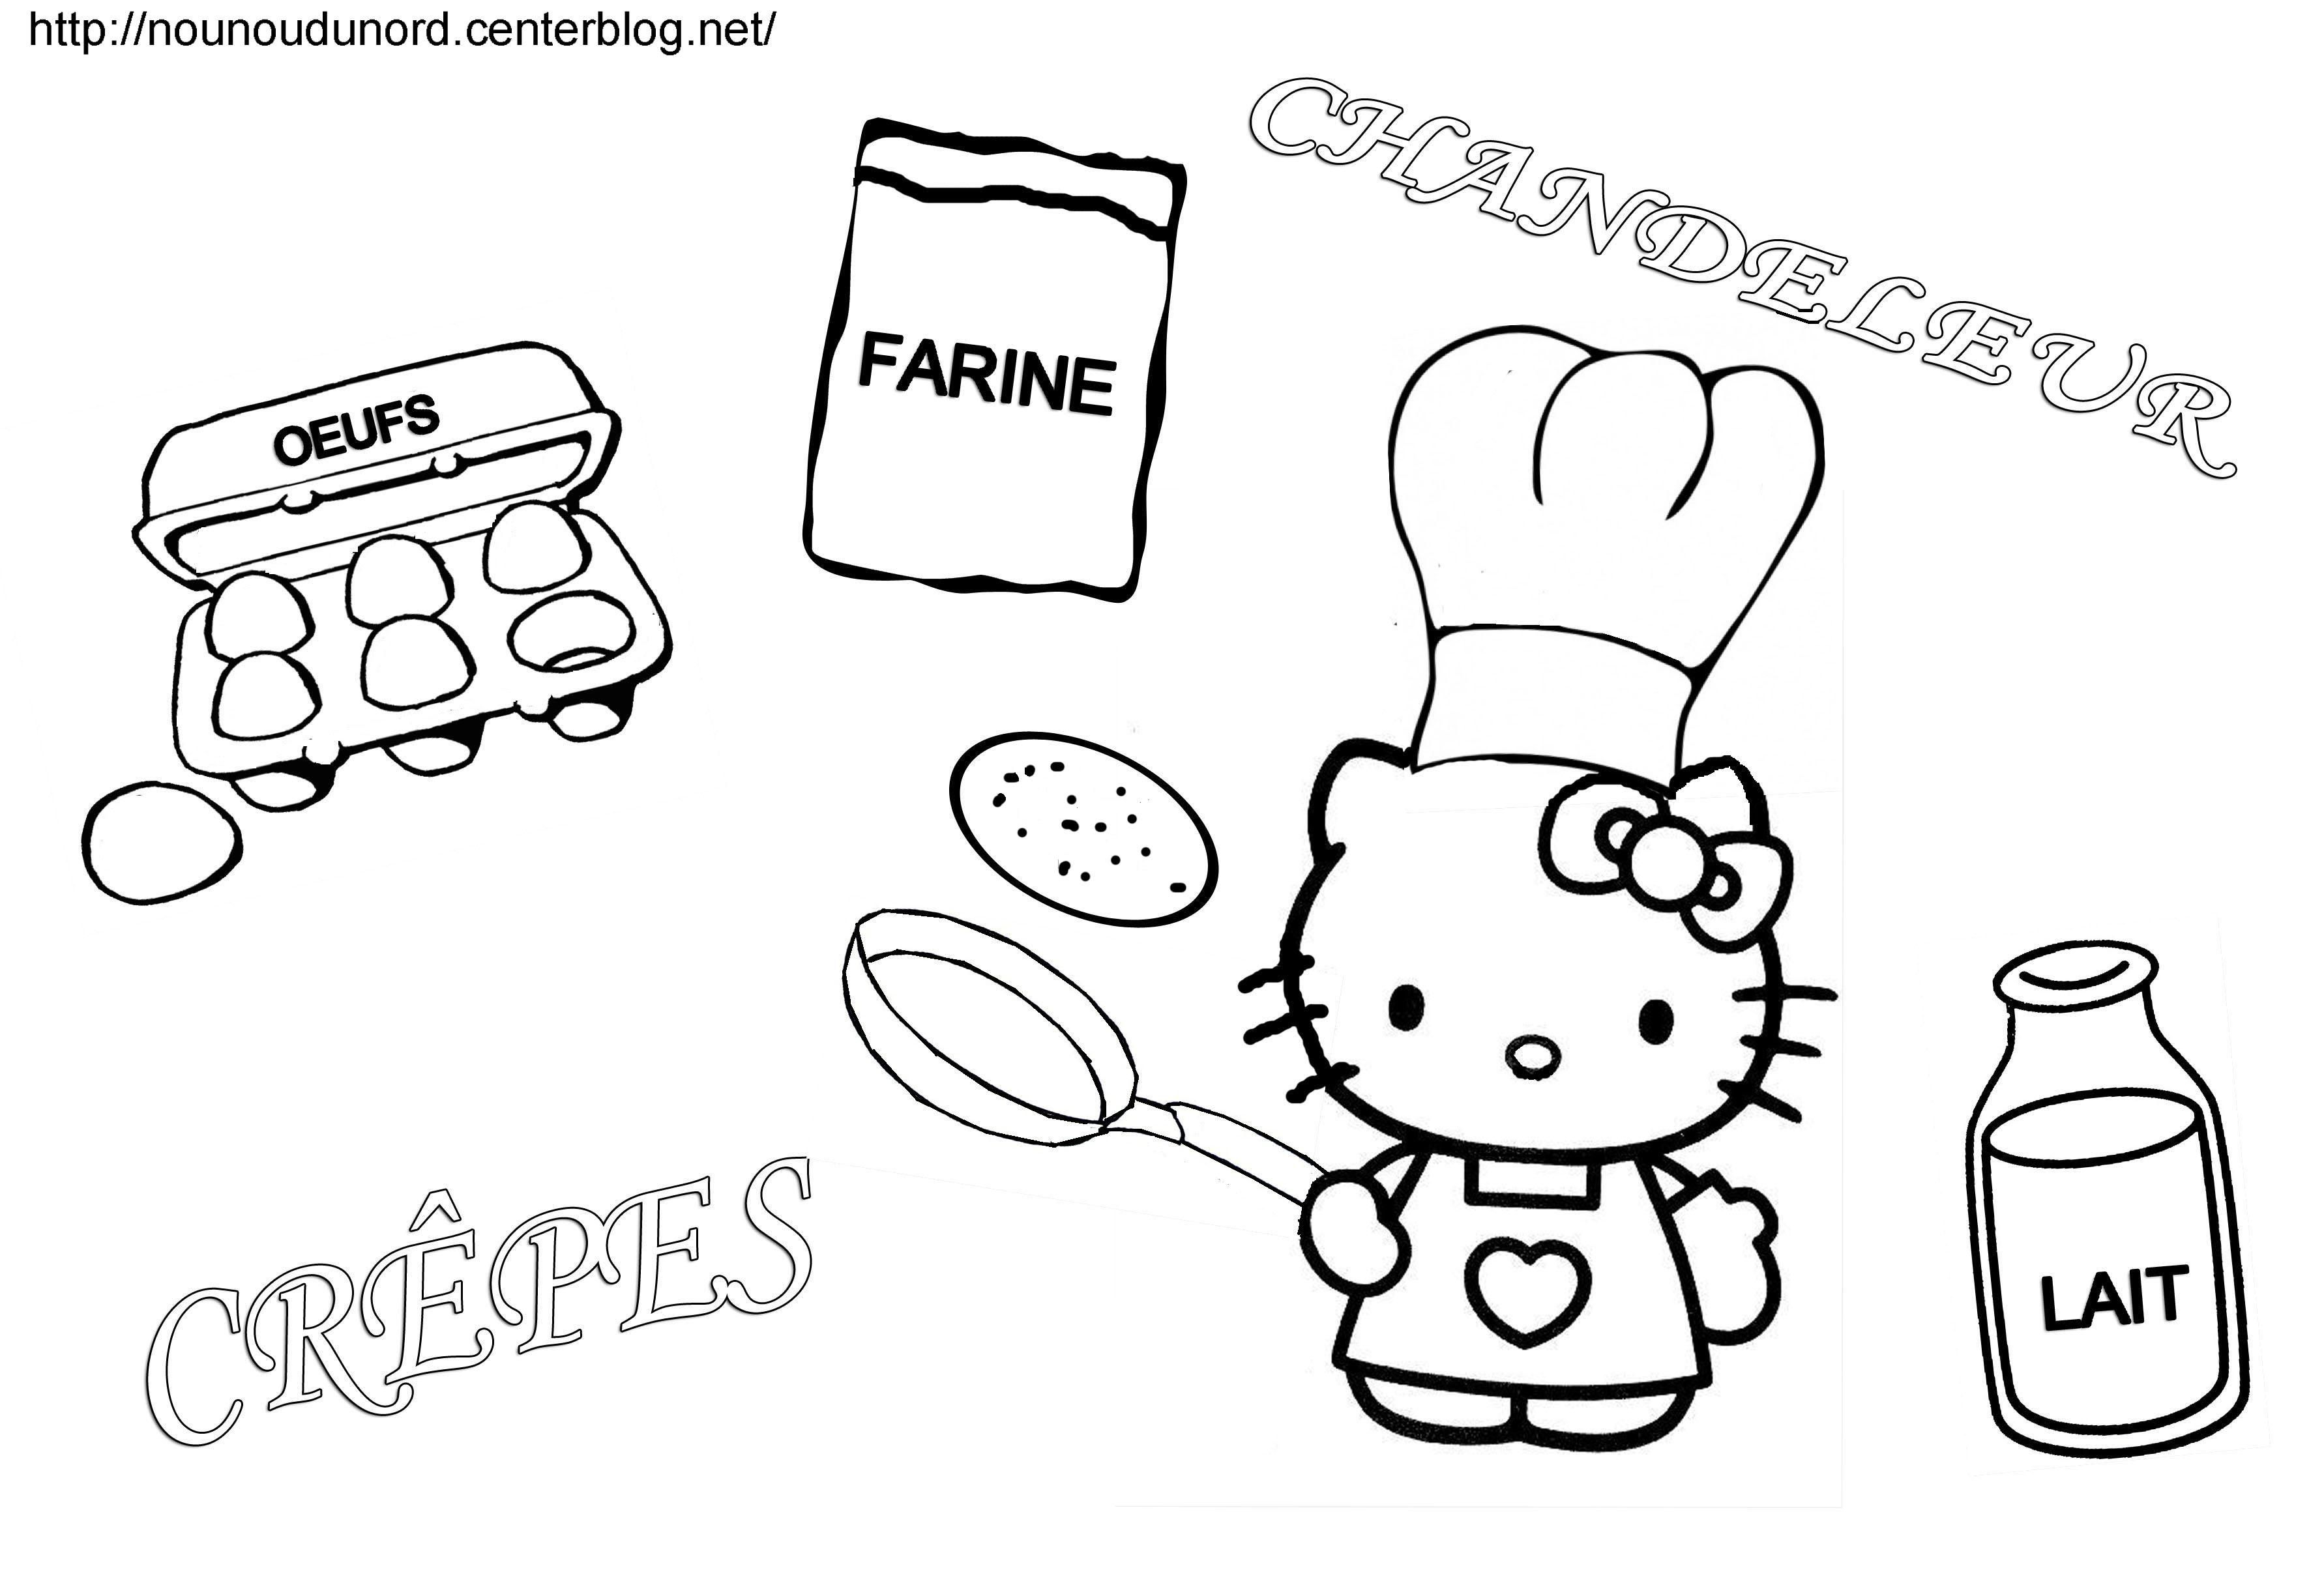 Coloriages crepes chandeleur page 2 - Nounoudunord coloriage ...